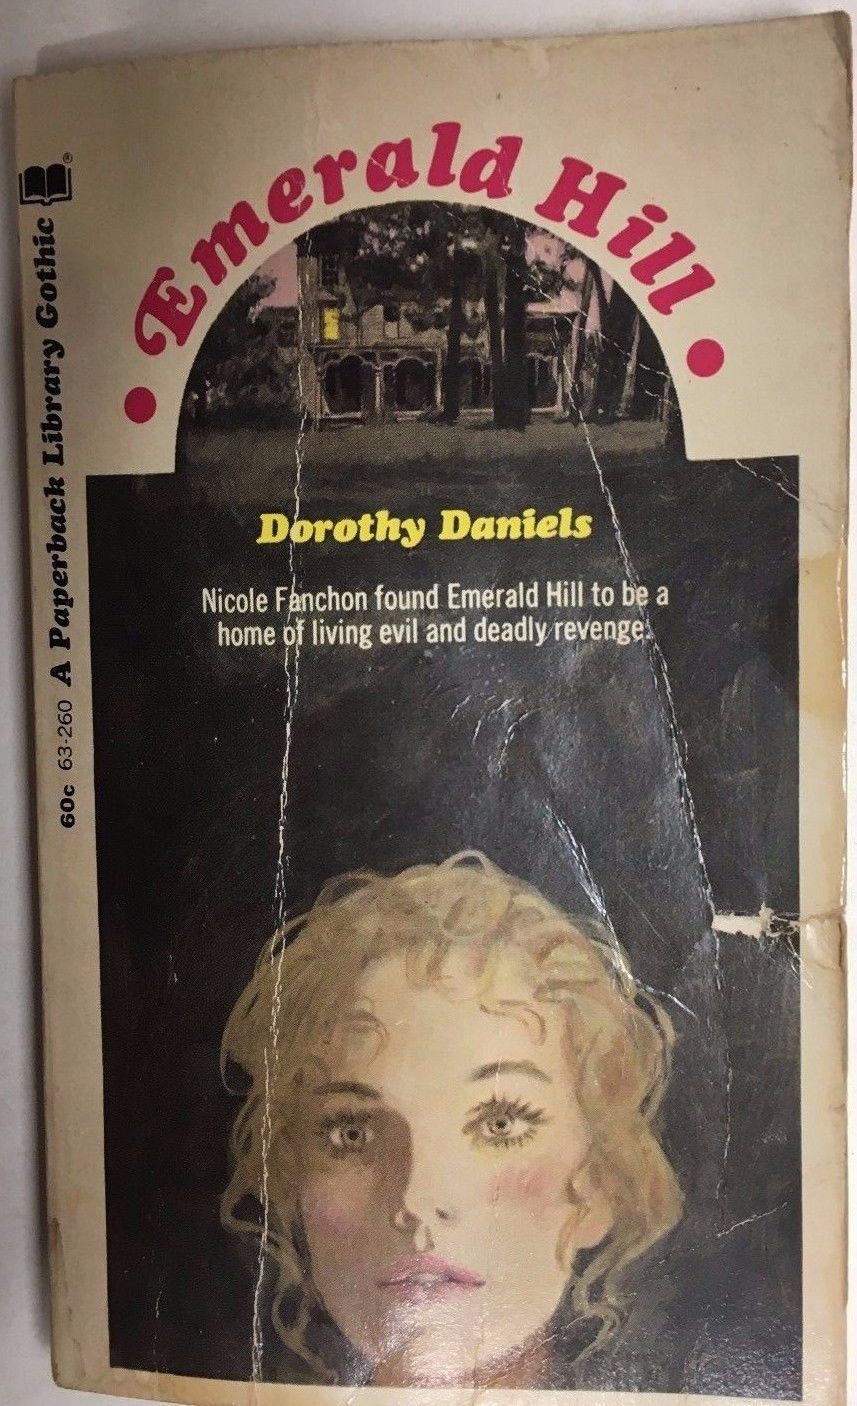 Primary image for EMERALD HILL by Dorothy Daniels (1970) Paperback Library gothic pb 1st